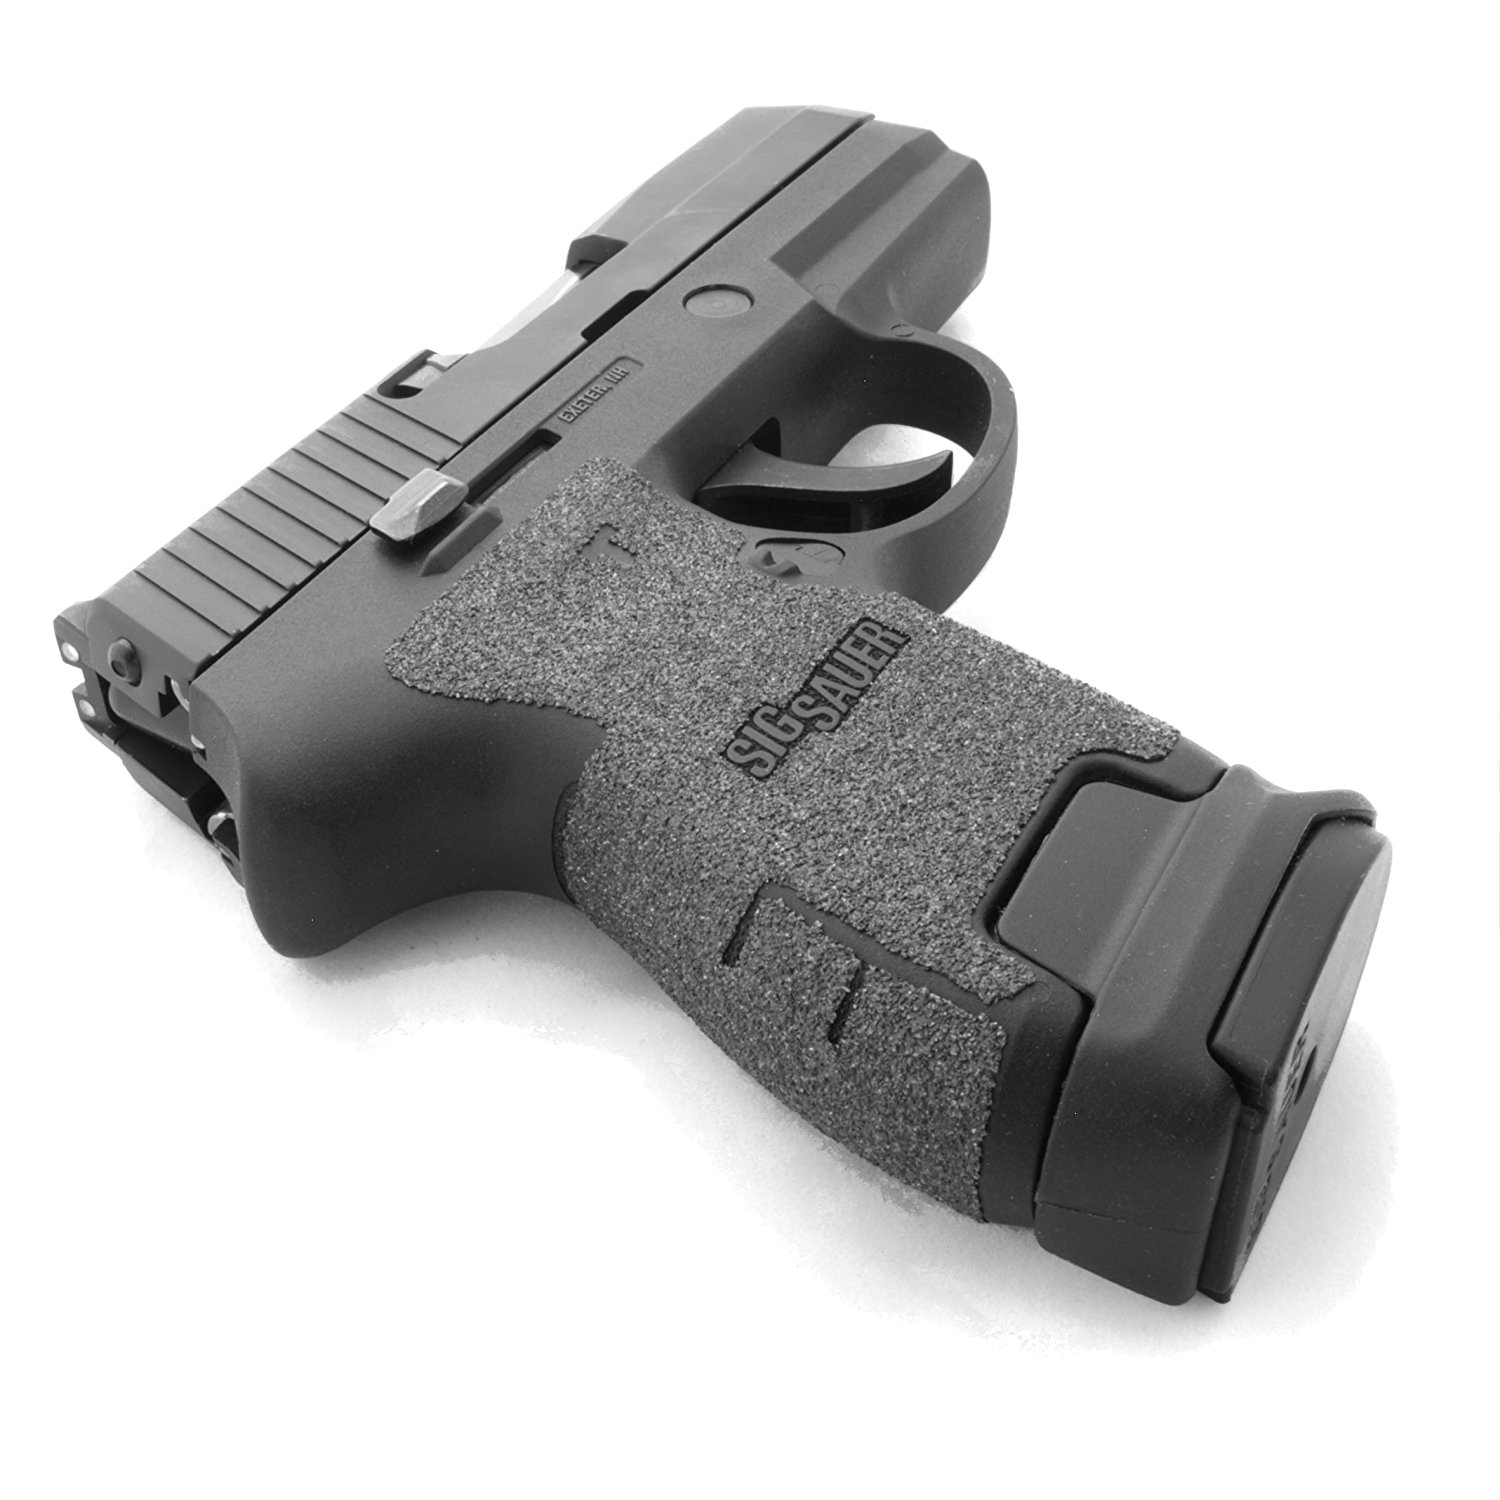 Cheap Sig Subcompact 40, find Sig Subcompact 40 deals on